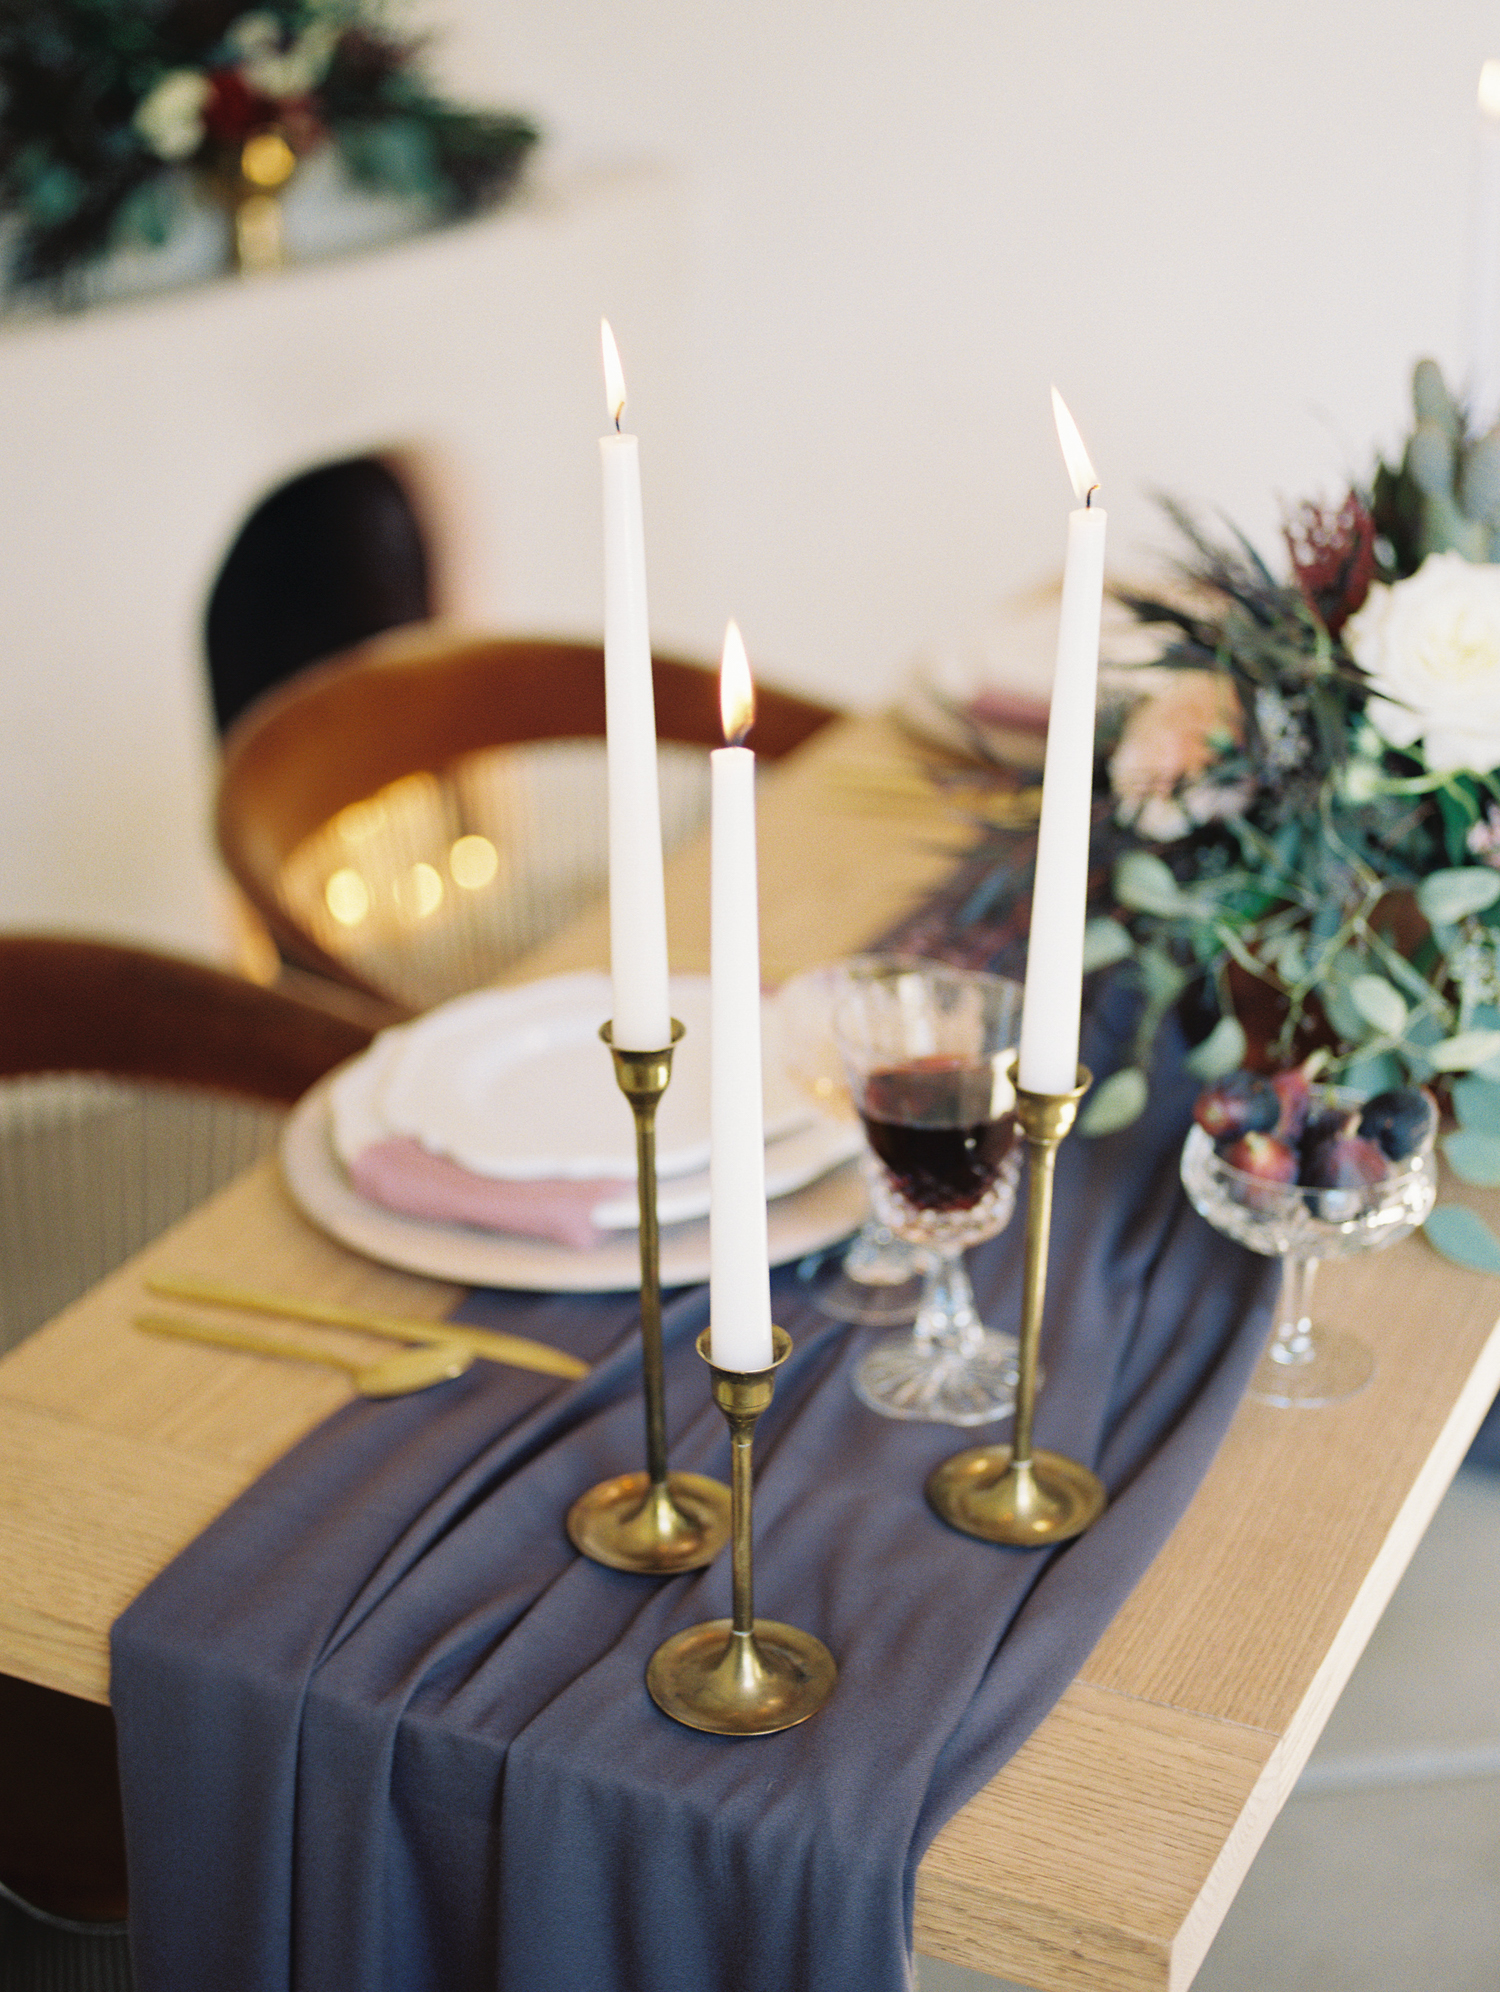 table setting with tall white tapered candles in brass candlesticks and a plum table runner